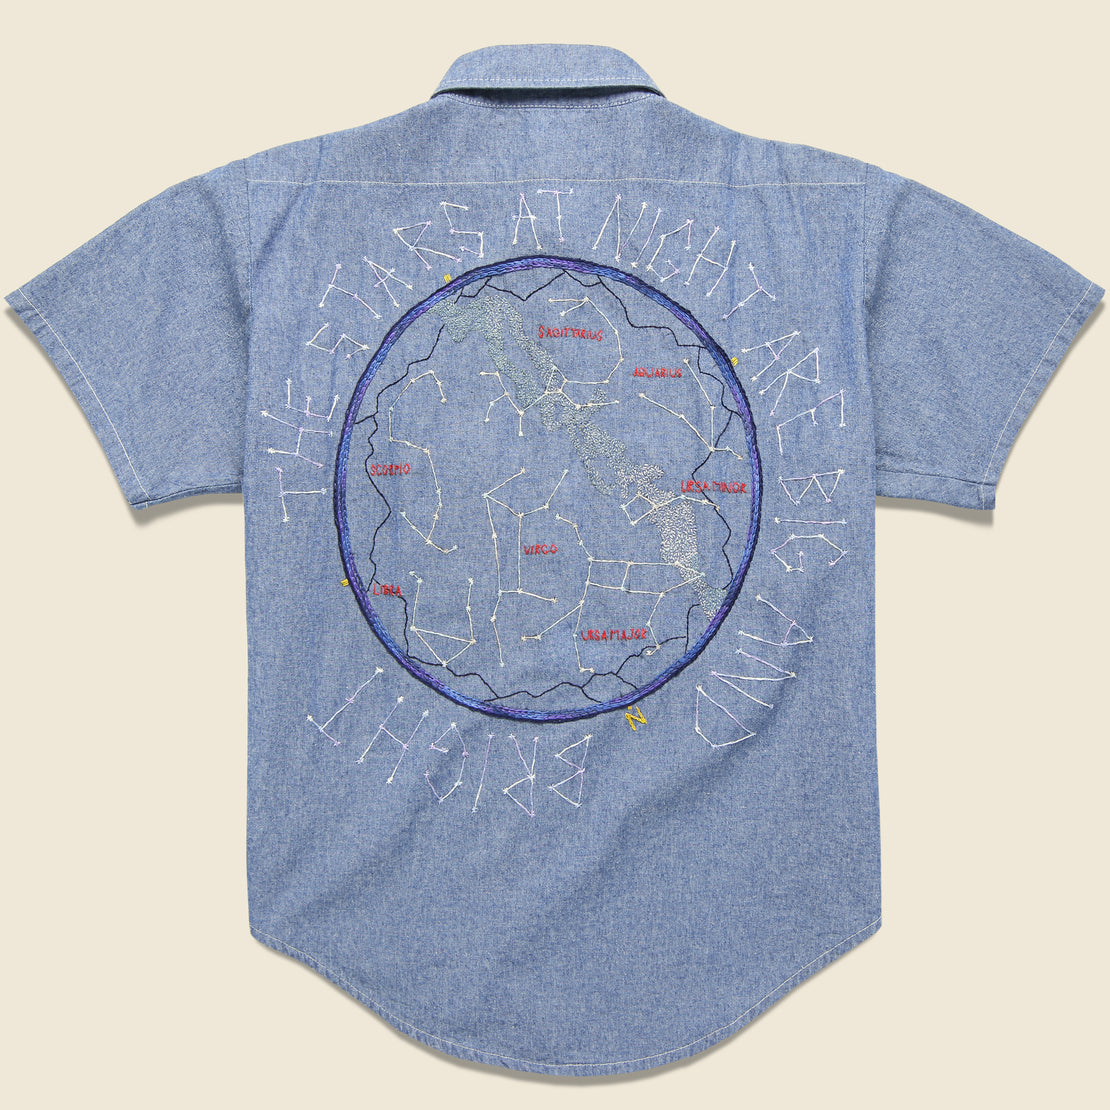 Jolly Knot Club Embroidered Chambray Shirt - The Stars at Night